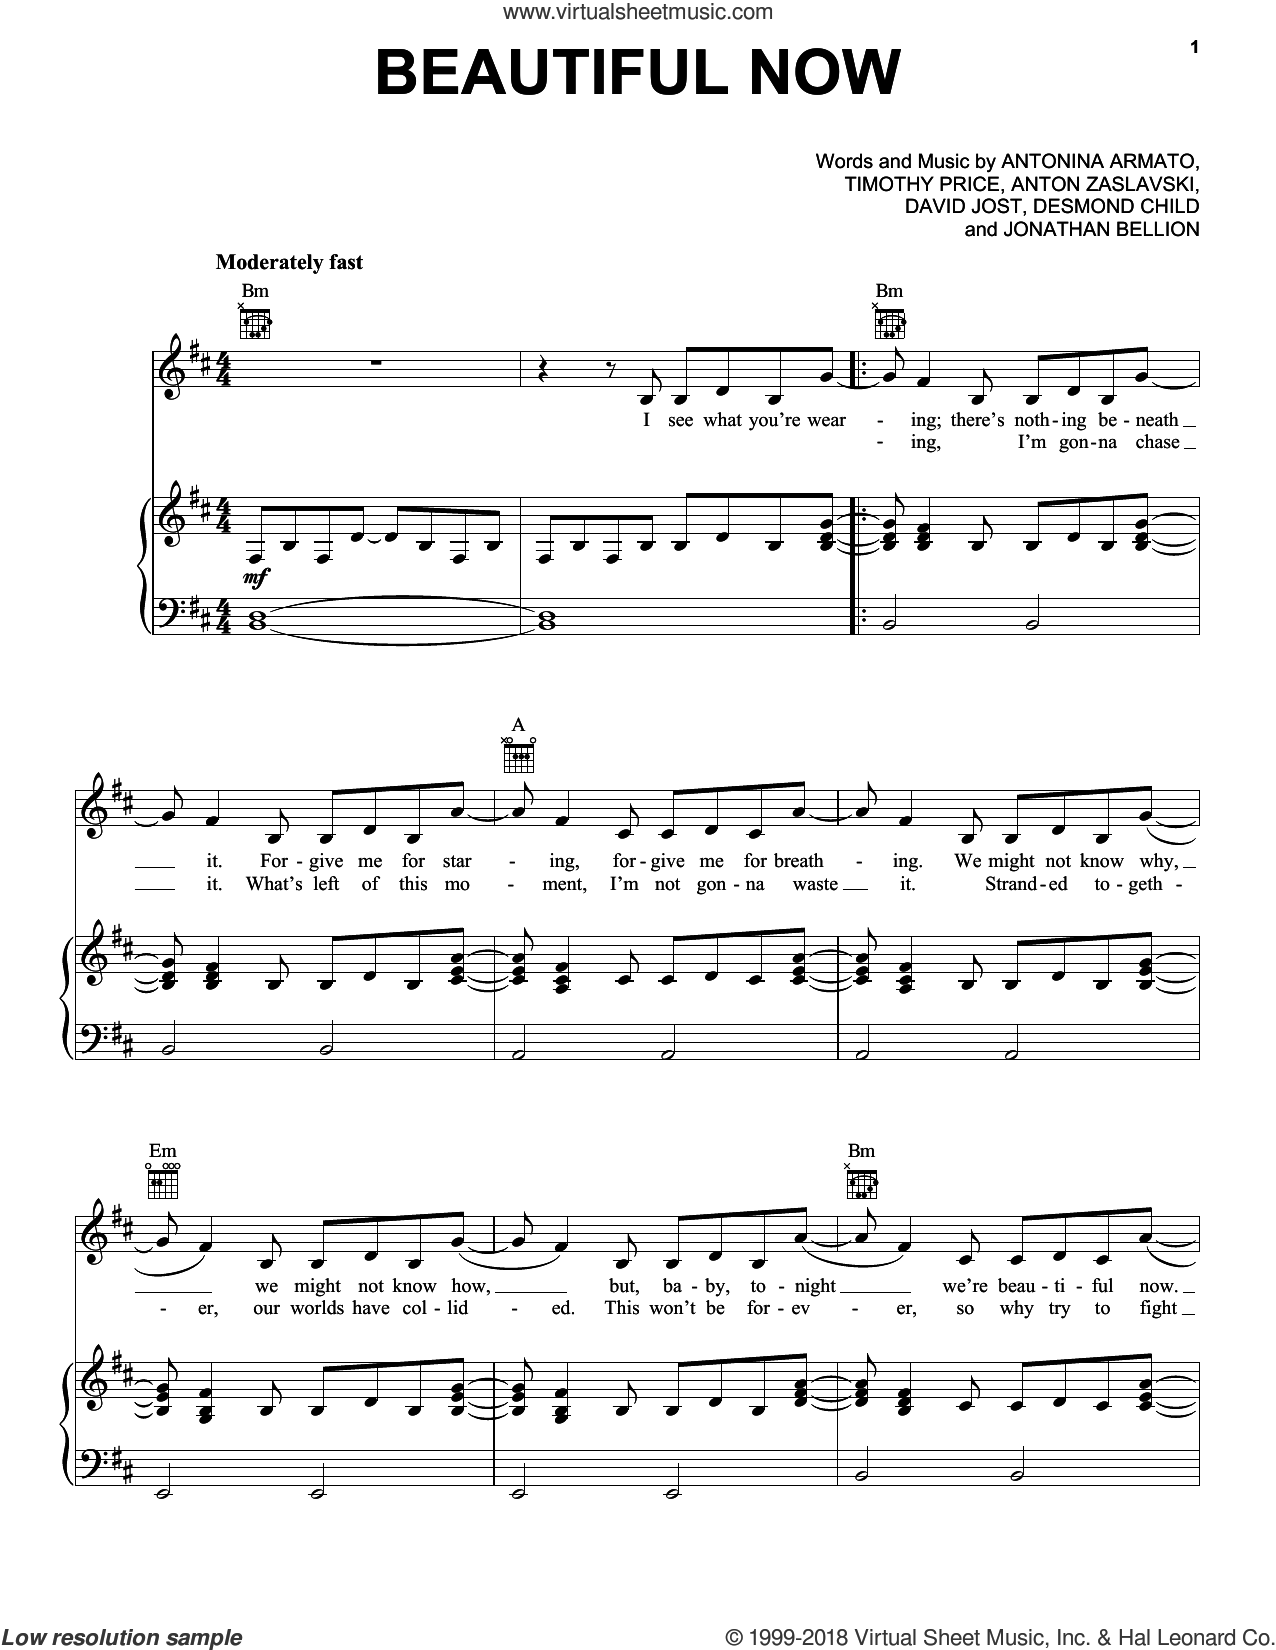 Beautiful Now sheet music for voice, piano or guitar by Zedd, Anton Zaslavski, Antonina Armato, David Jost, Desmond Child, Jonathan Bellion and Timothy Price, intermediate. Score Image Preview.